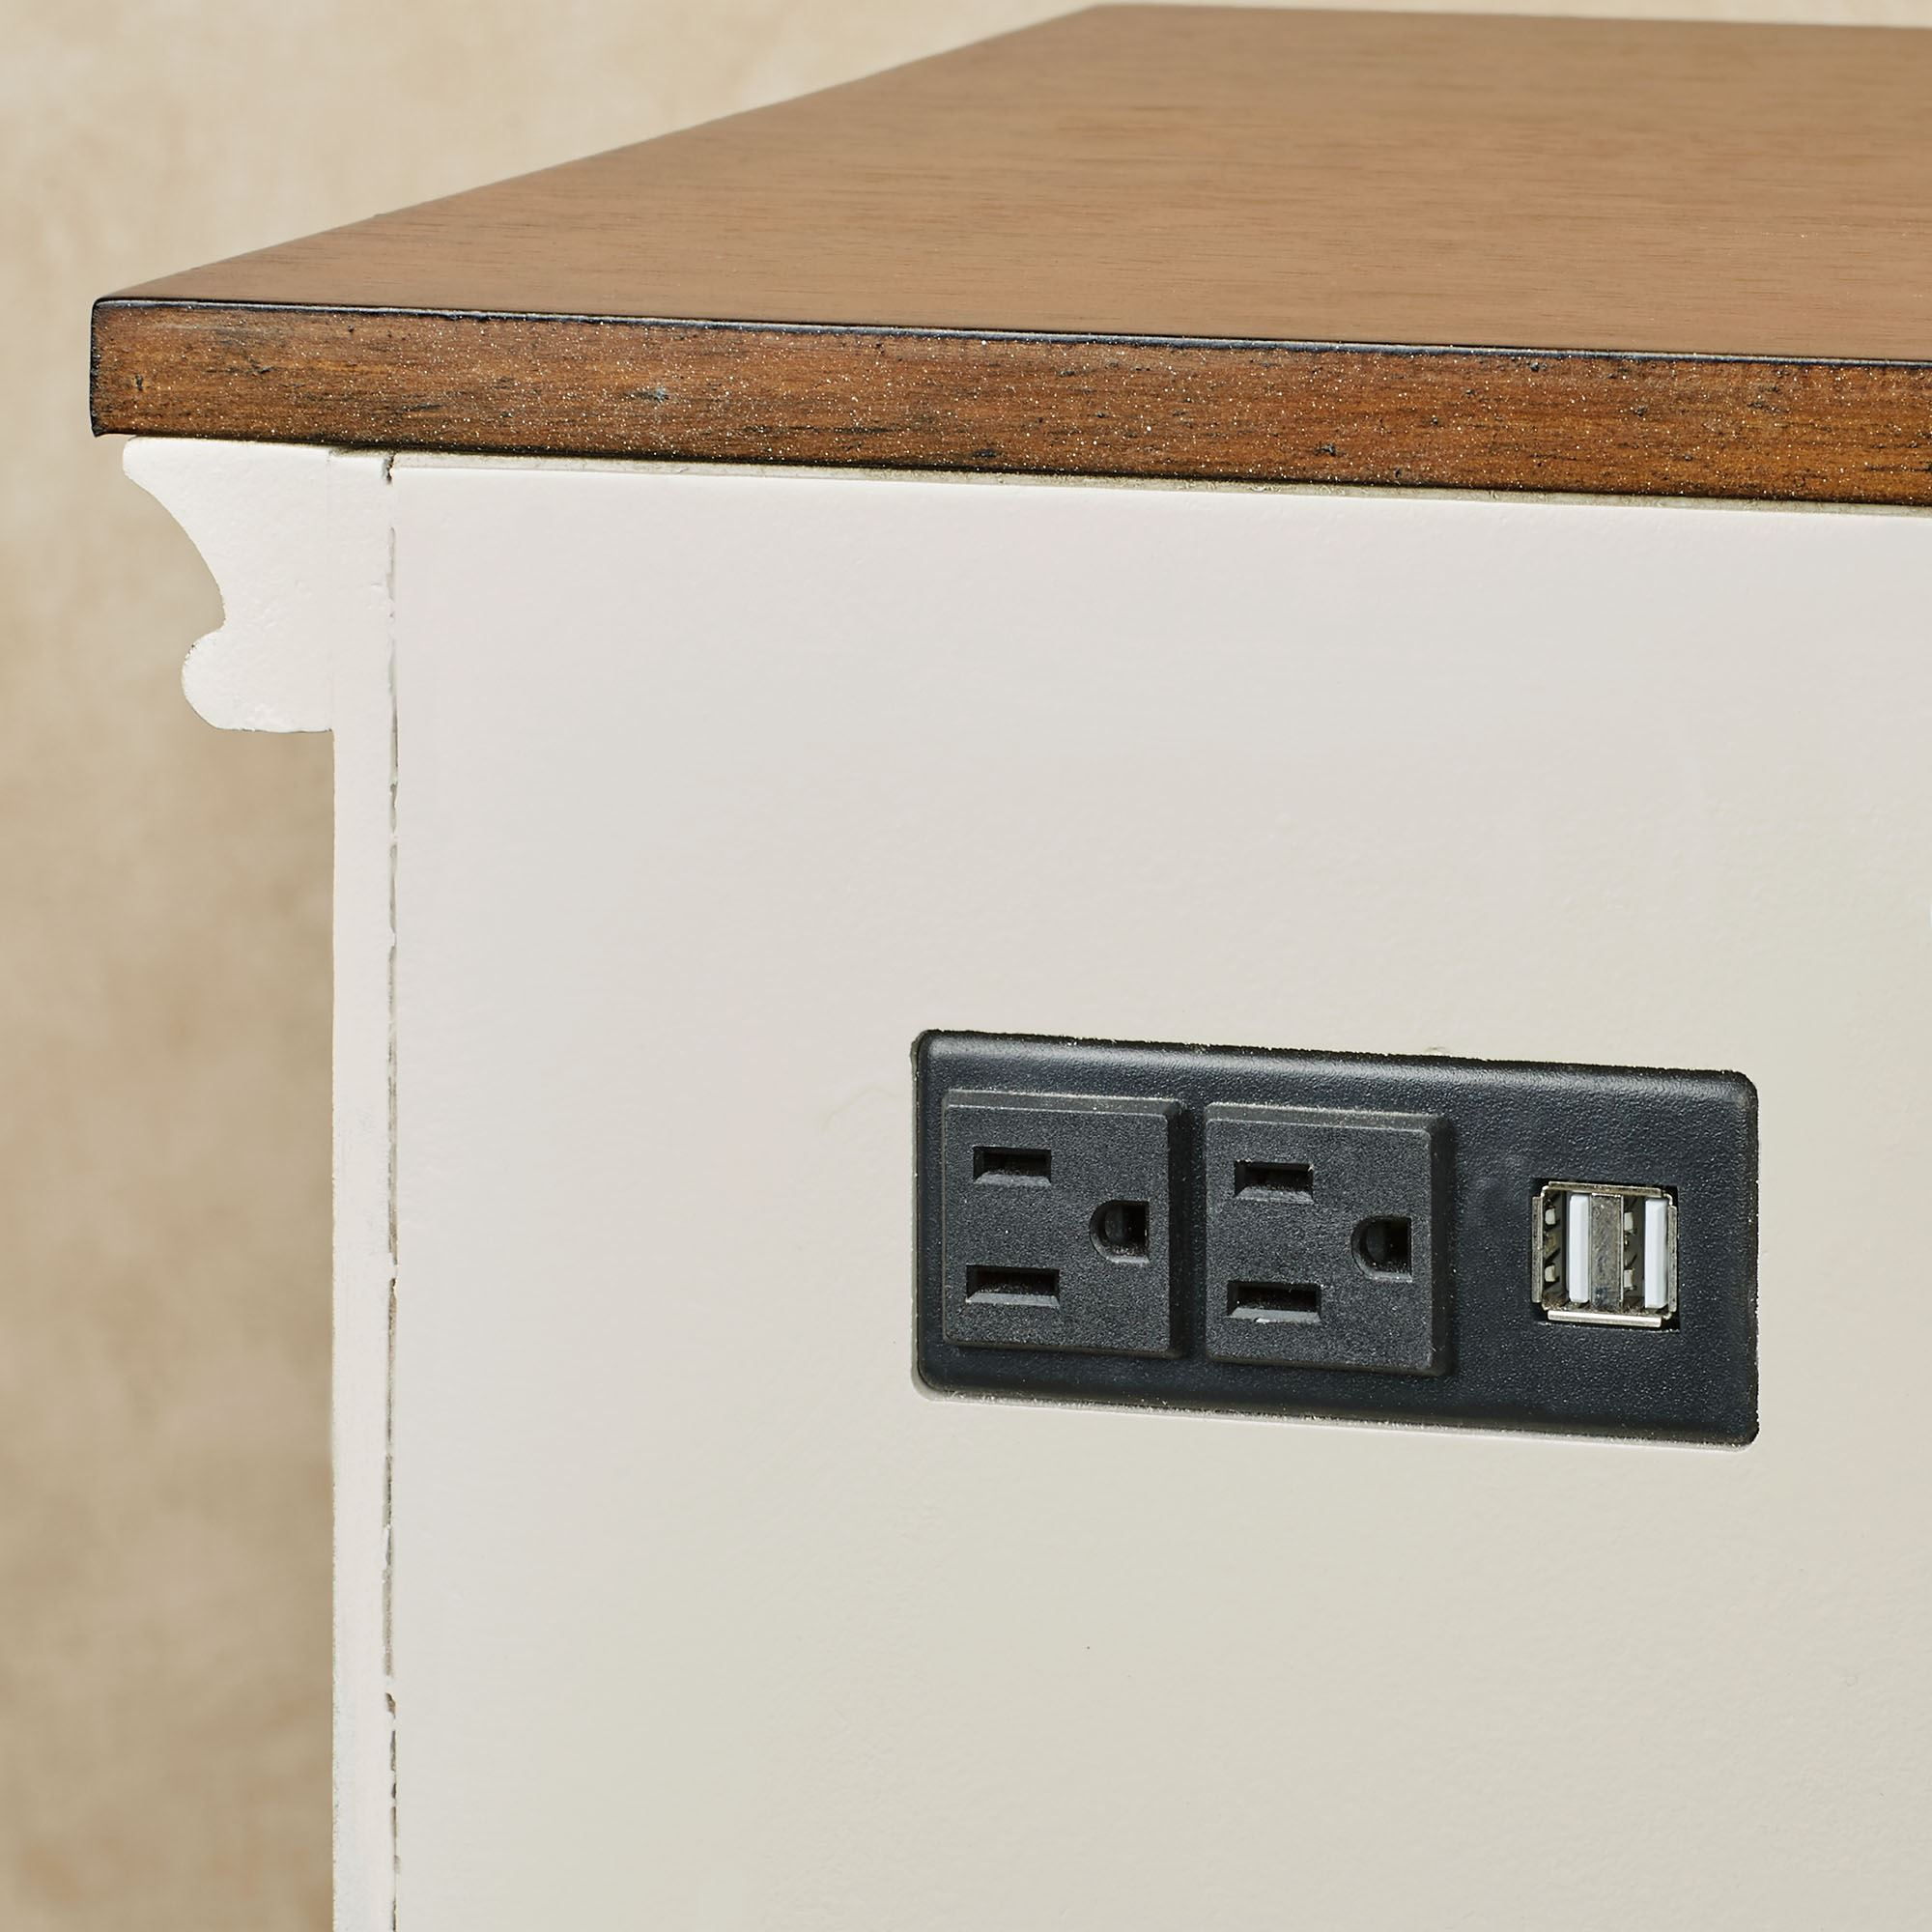 Orion Wooden Storage Cabinet With Usb Ports And Outlets